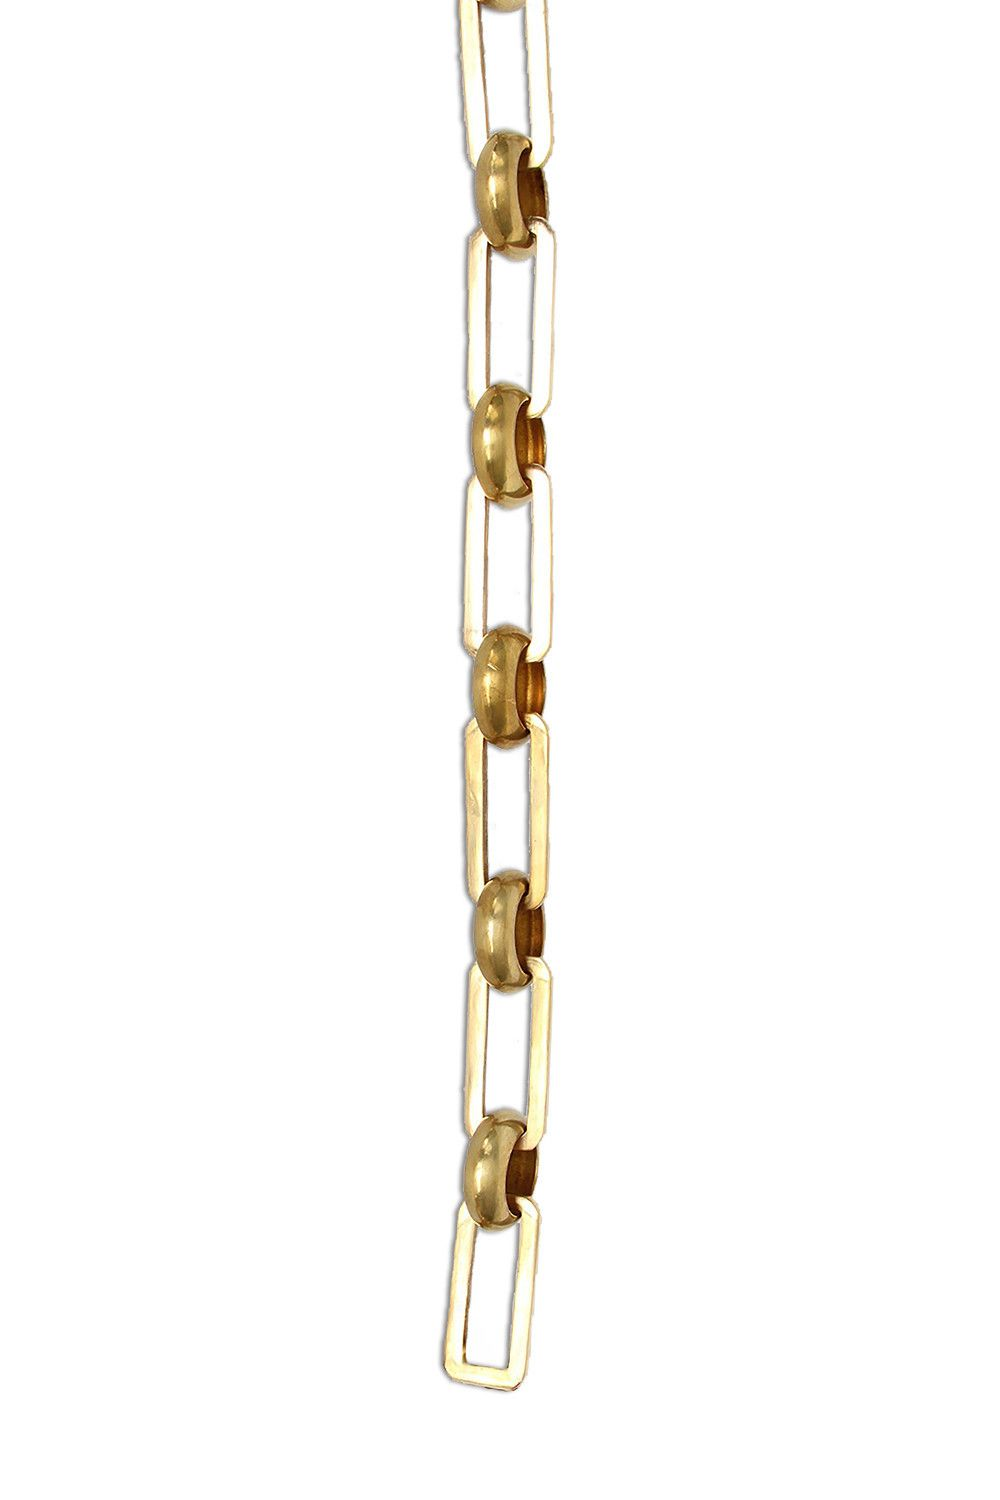 key product from polished hardware ch products lighting solid brass decorative rch greek chains for chandelier s chain pb